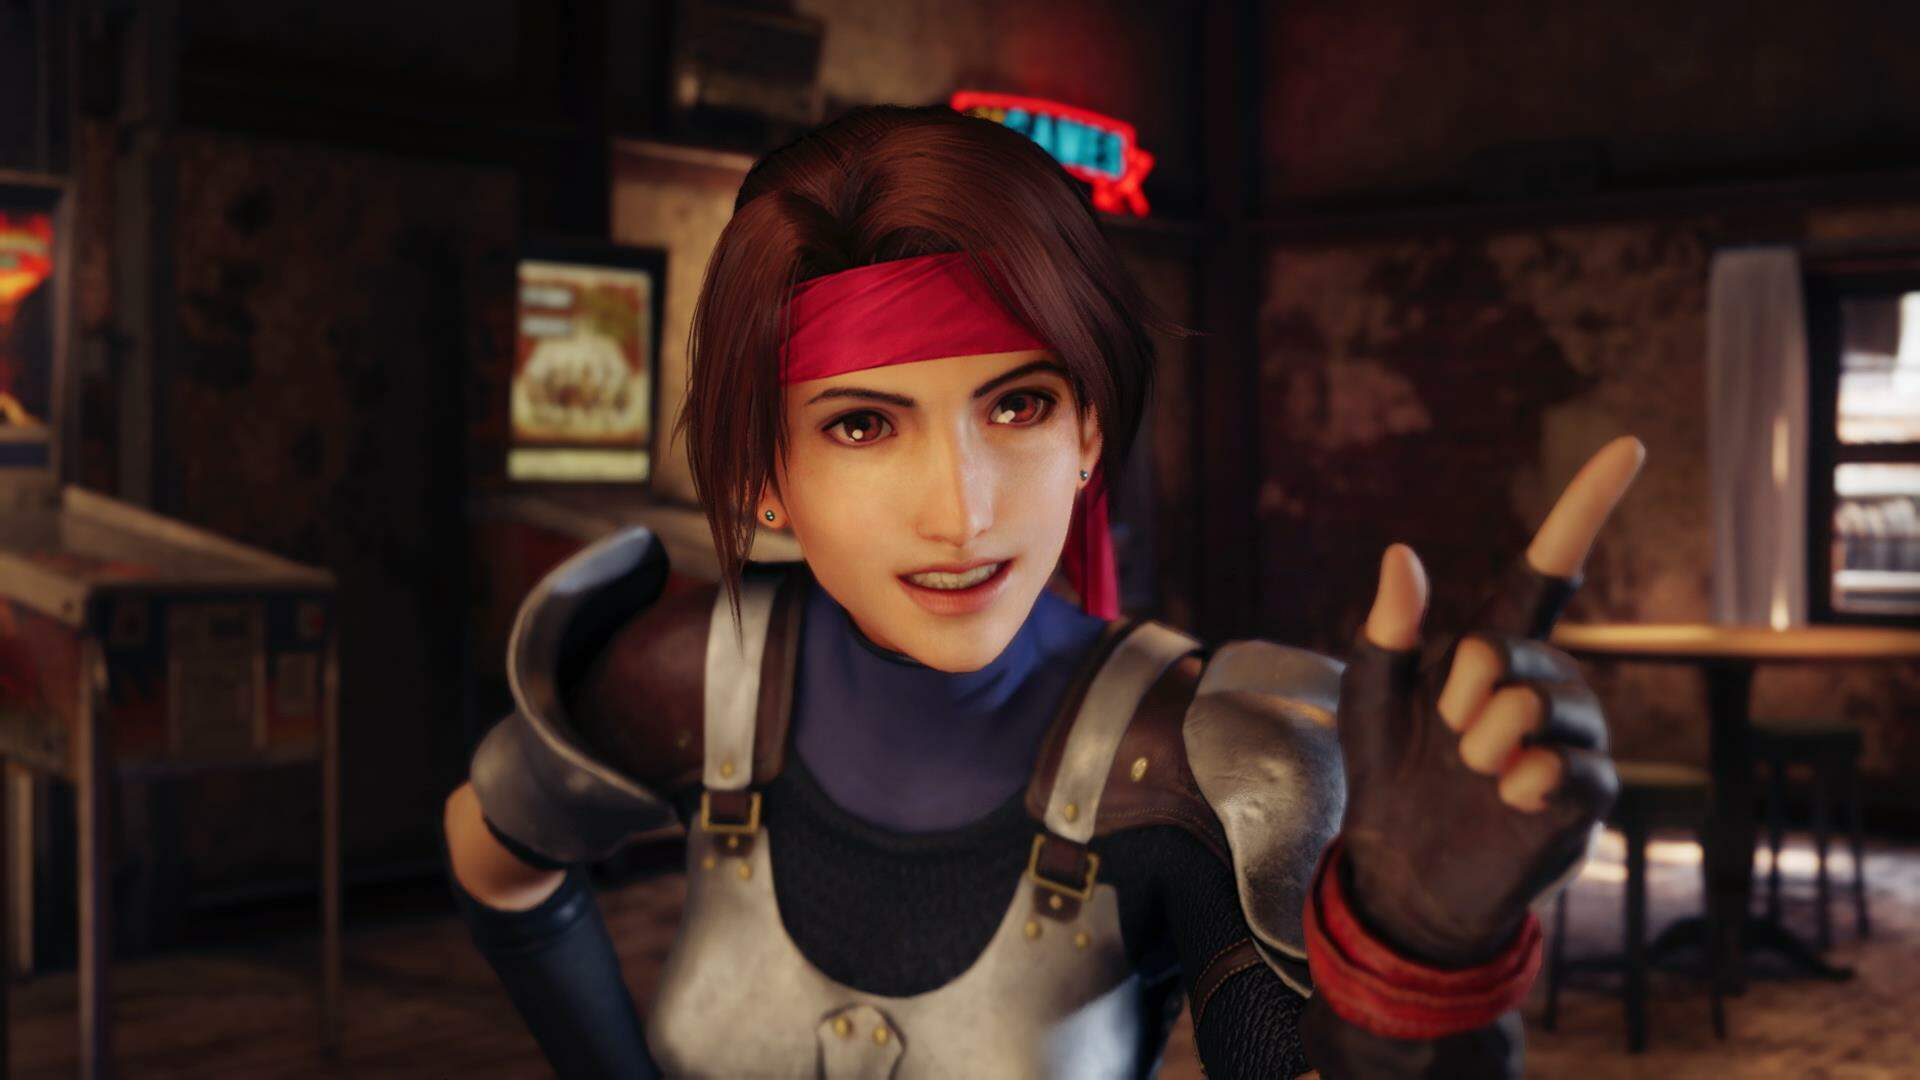 Jessie From Final Fantasy 7 Remake May Have Life in Her Yet